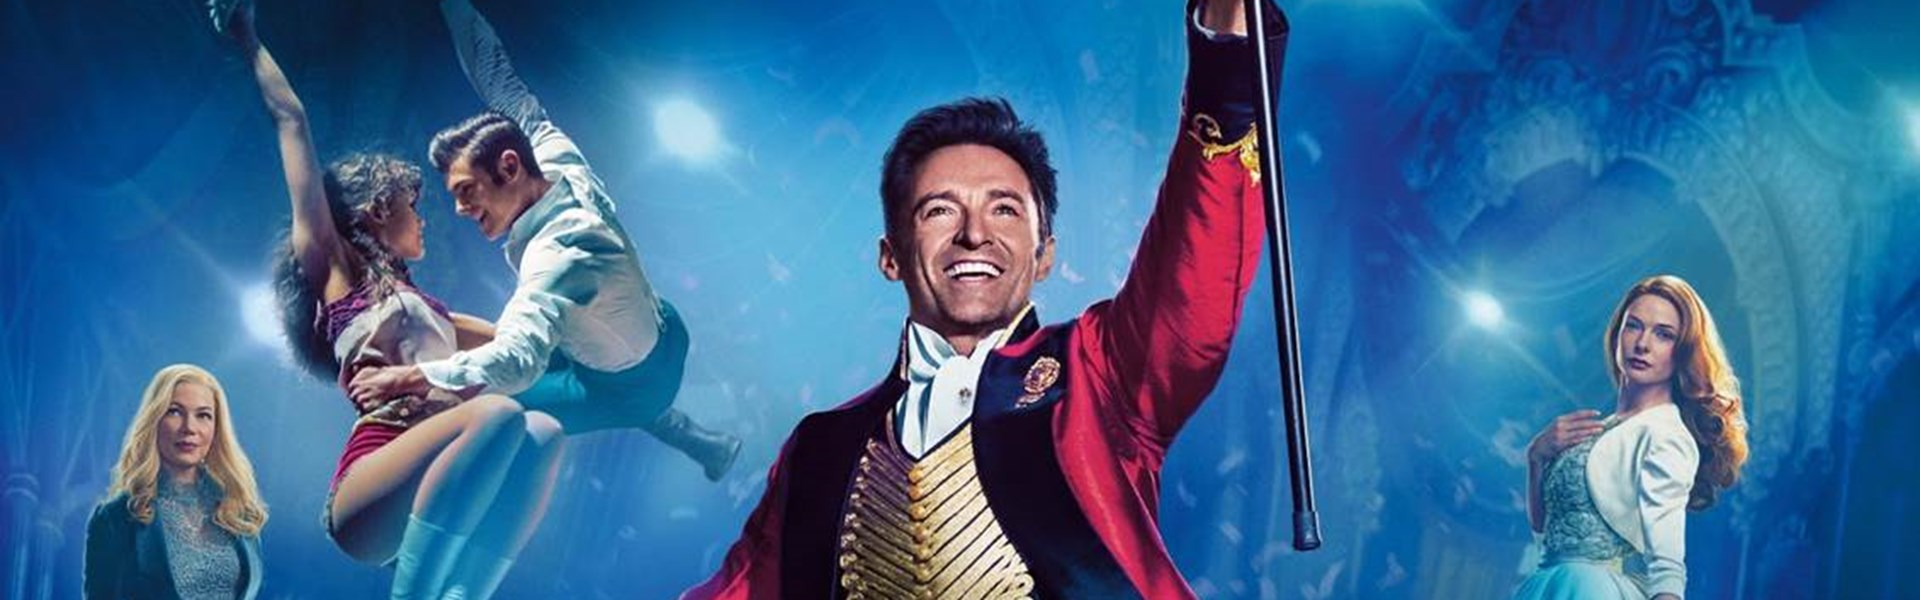 Beacon Park Drive In Movie: The Greatest Showman (PG)